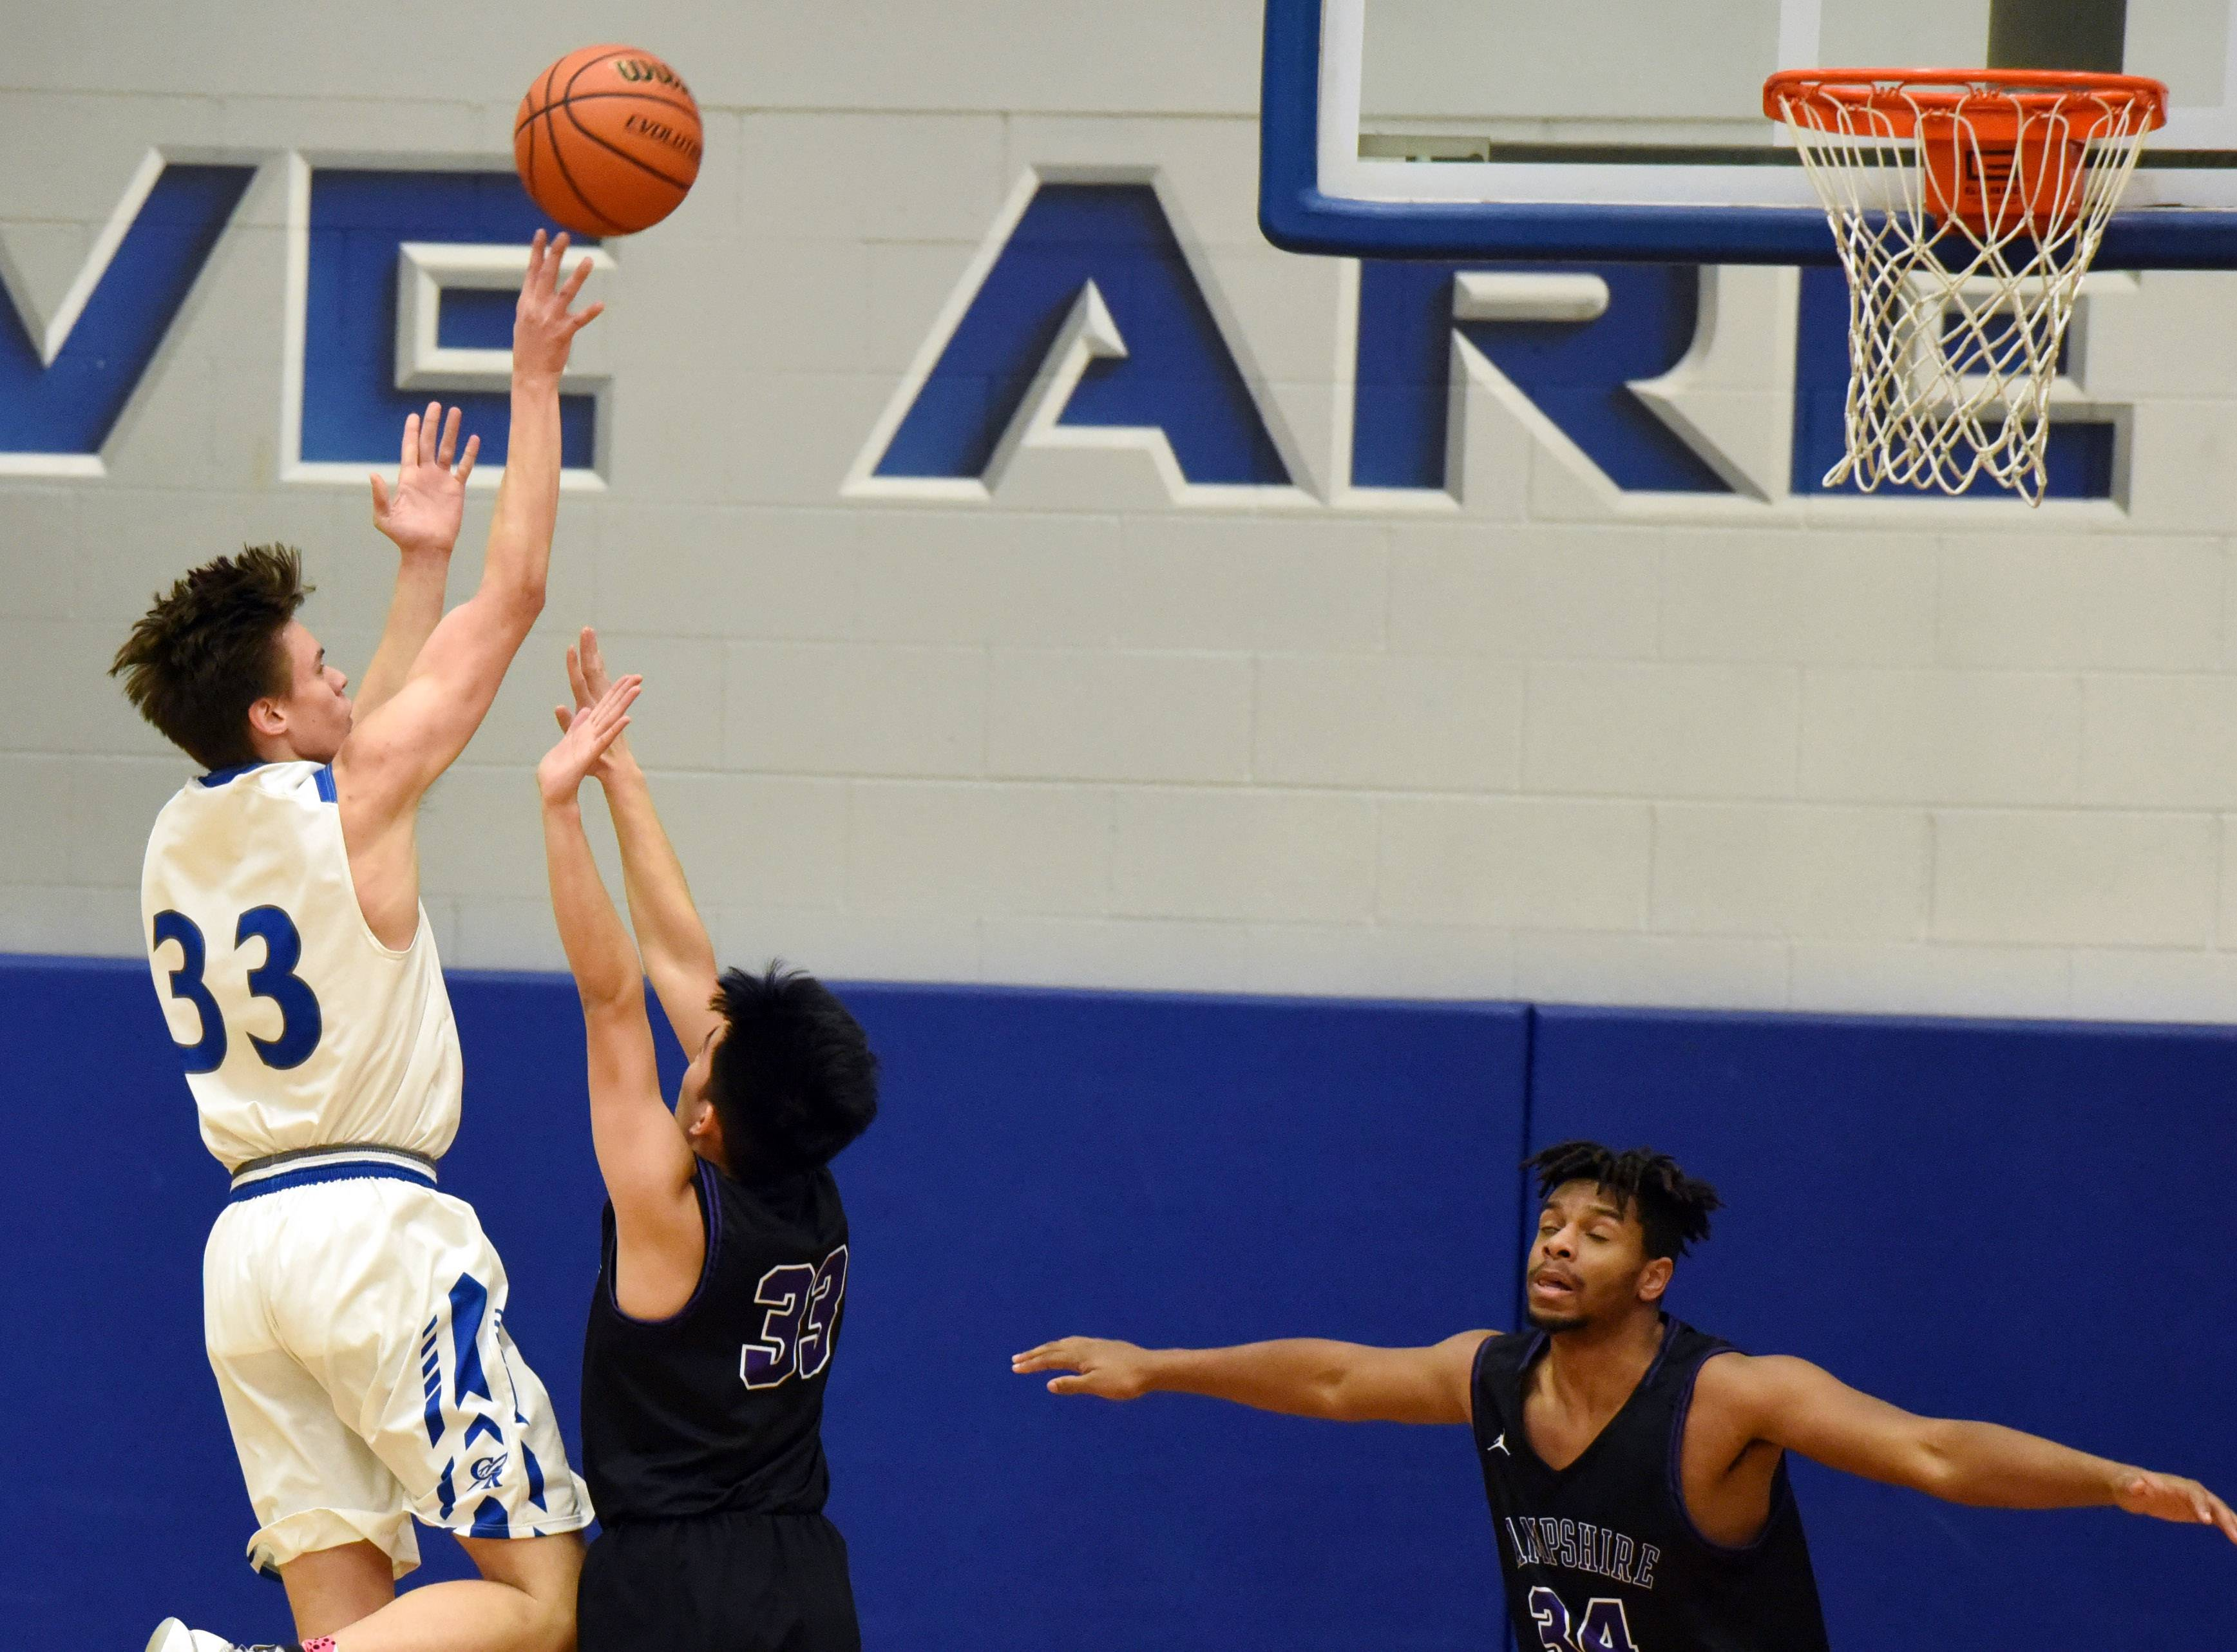 Burlington Central's William Hough puts up a shot over  Hampshire's Ethan Gonzales during Monday's game at the 3rd annual Central MLK Classic in Burlington.